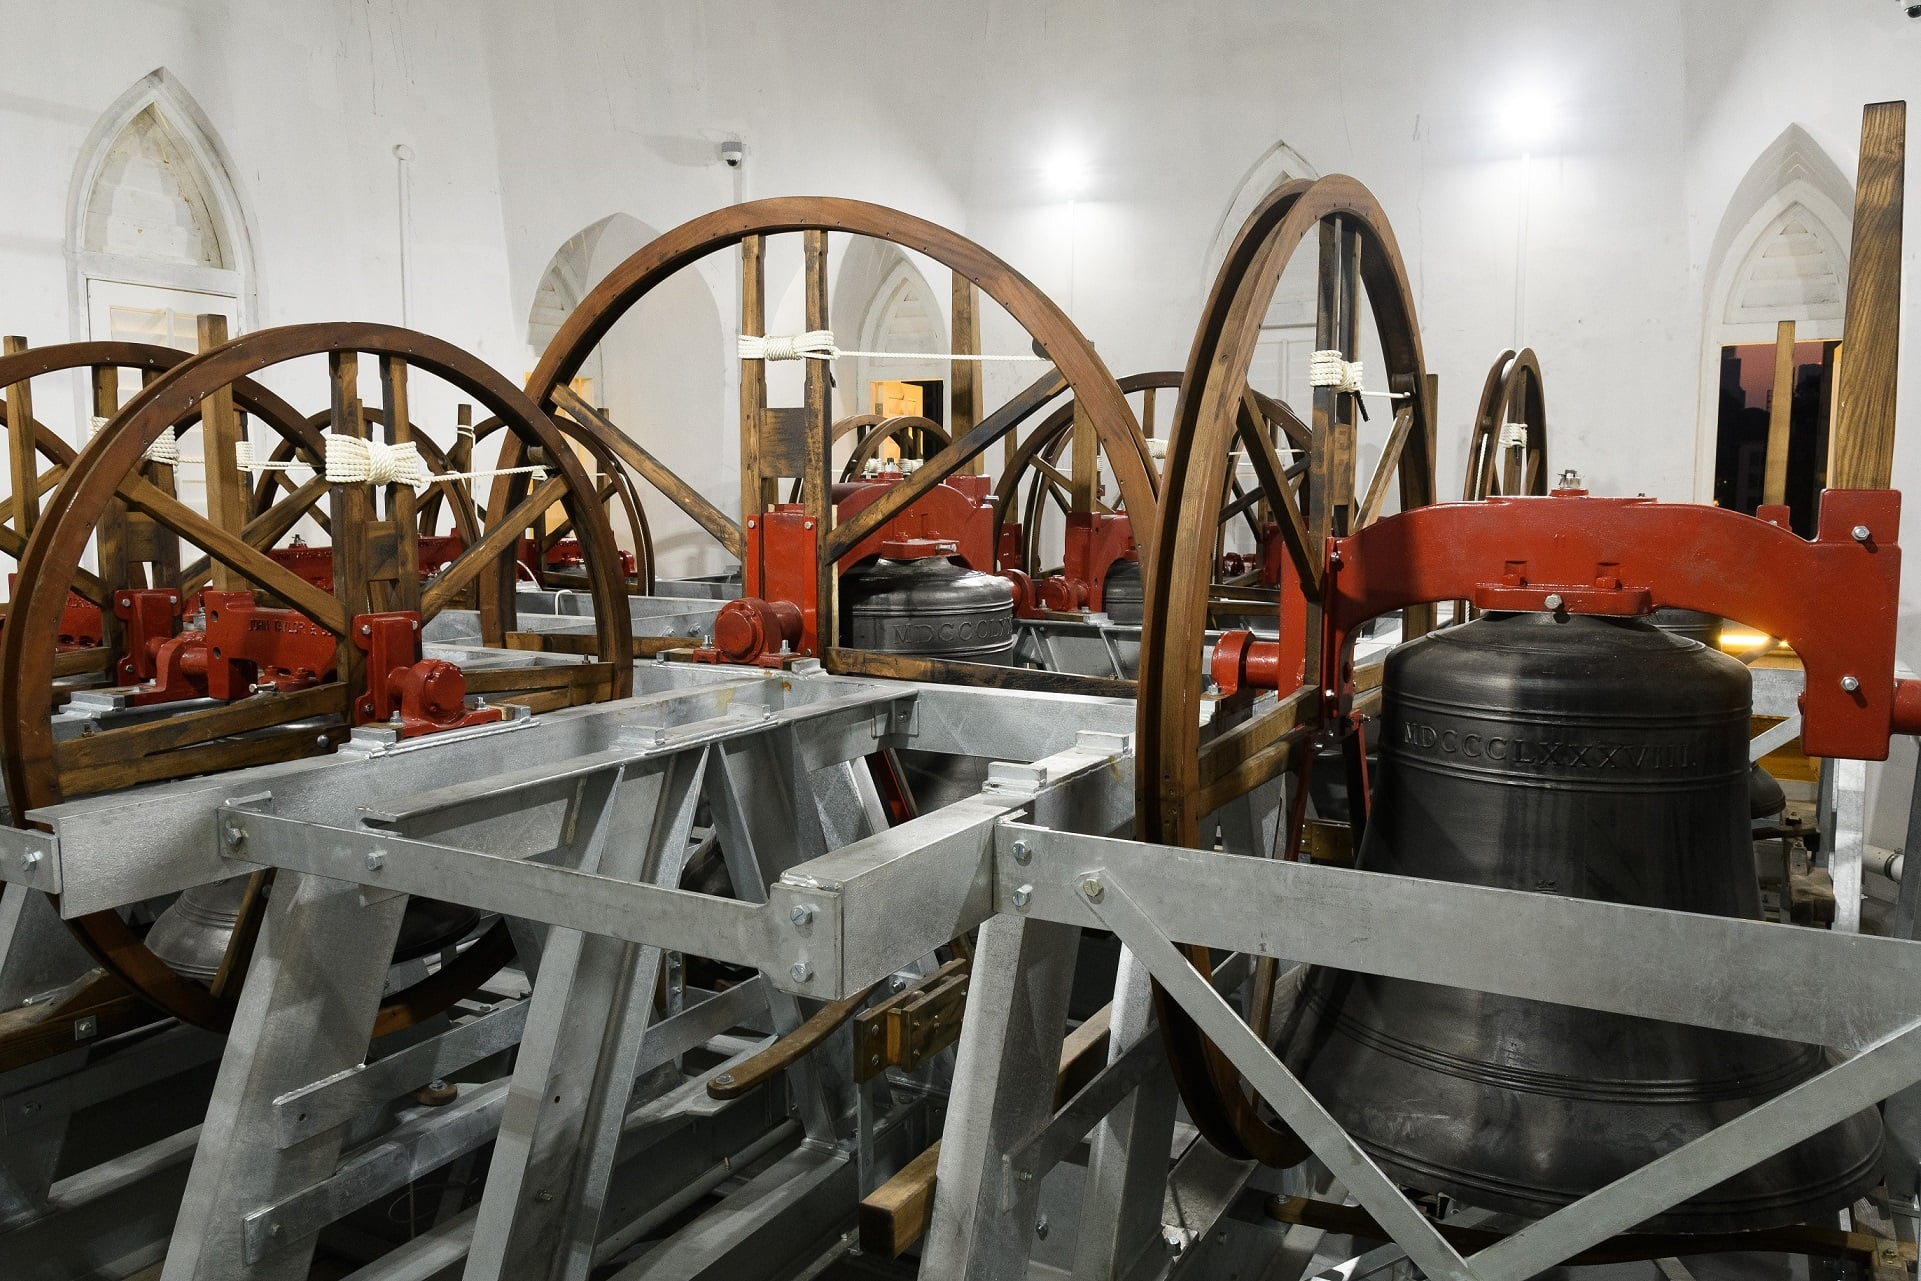 Thirteen bells were cast and tuned for Singapore's largest Cathedral St Andrew's